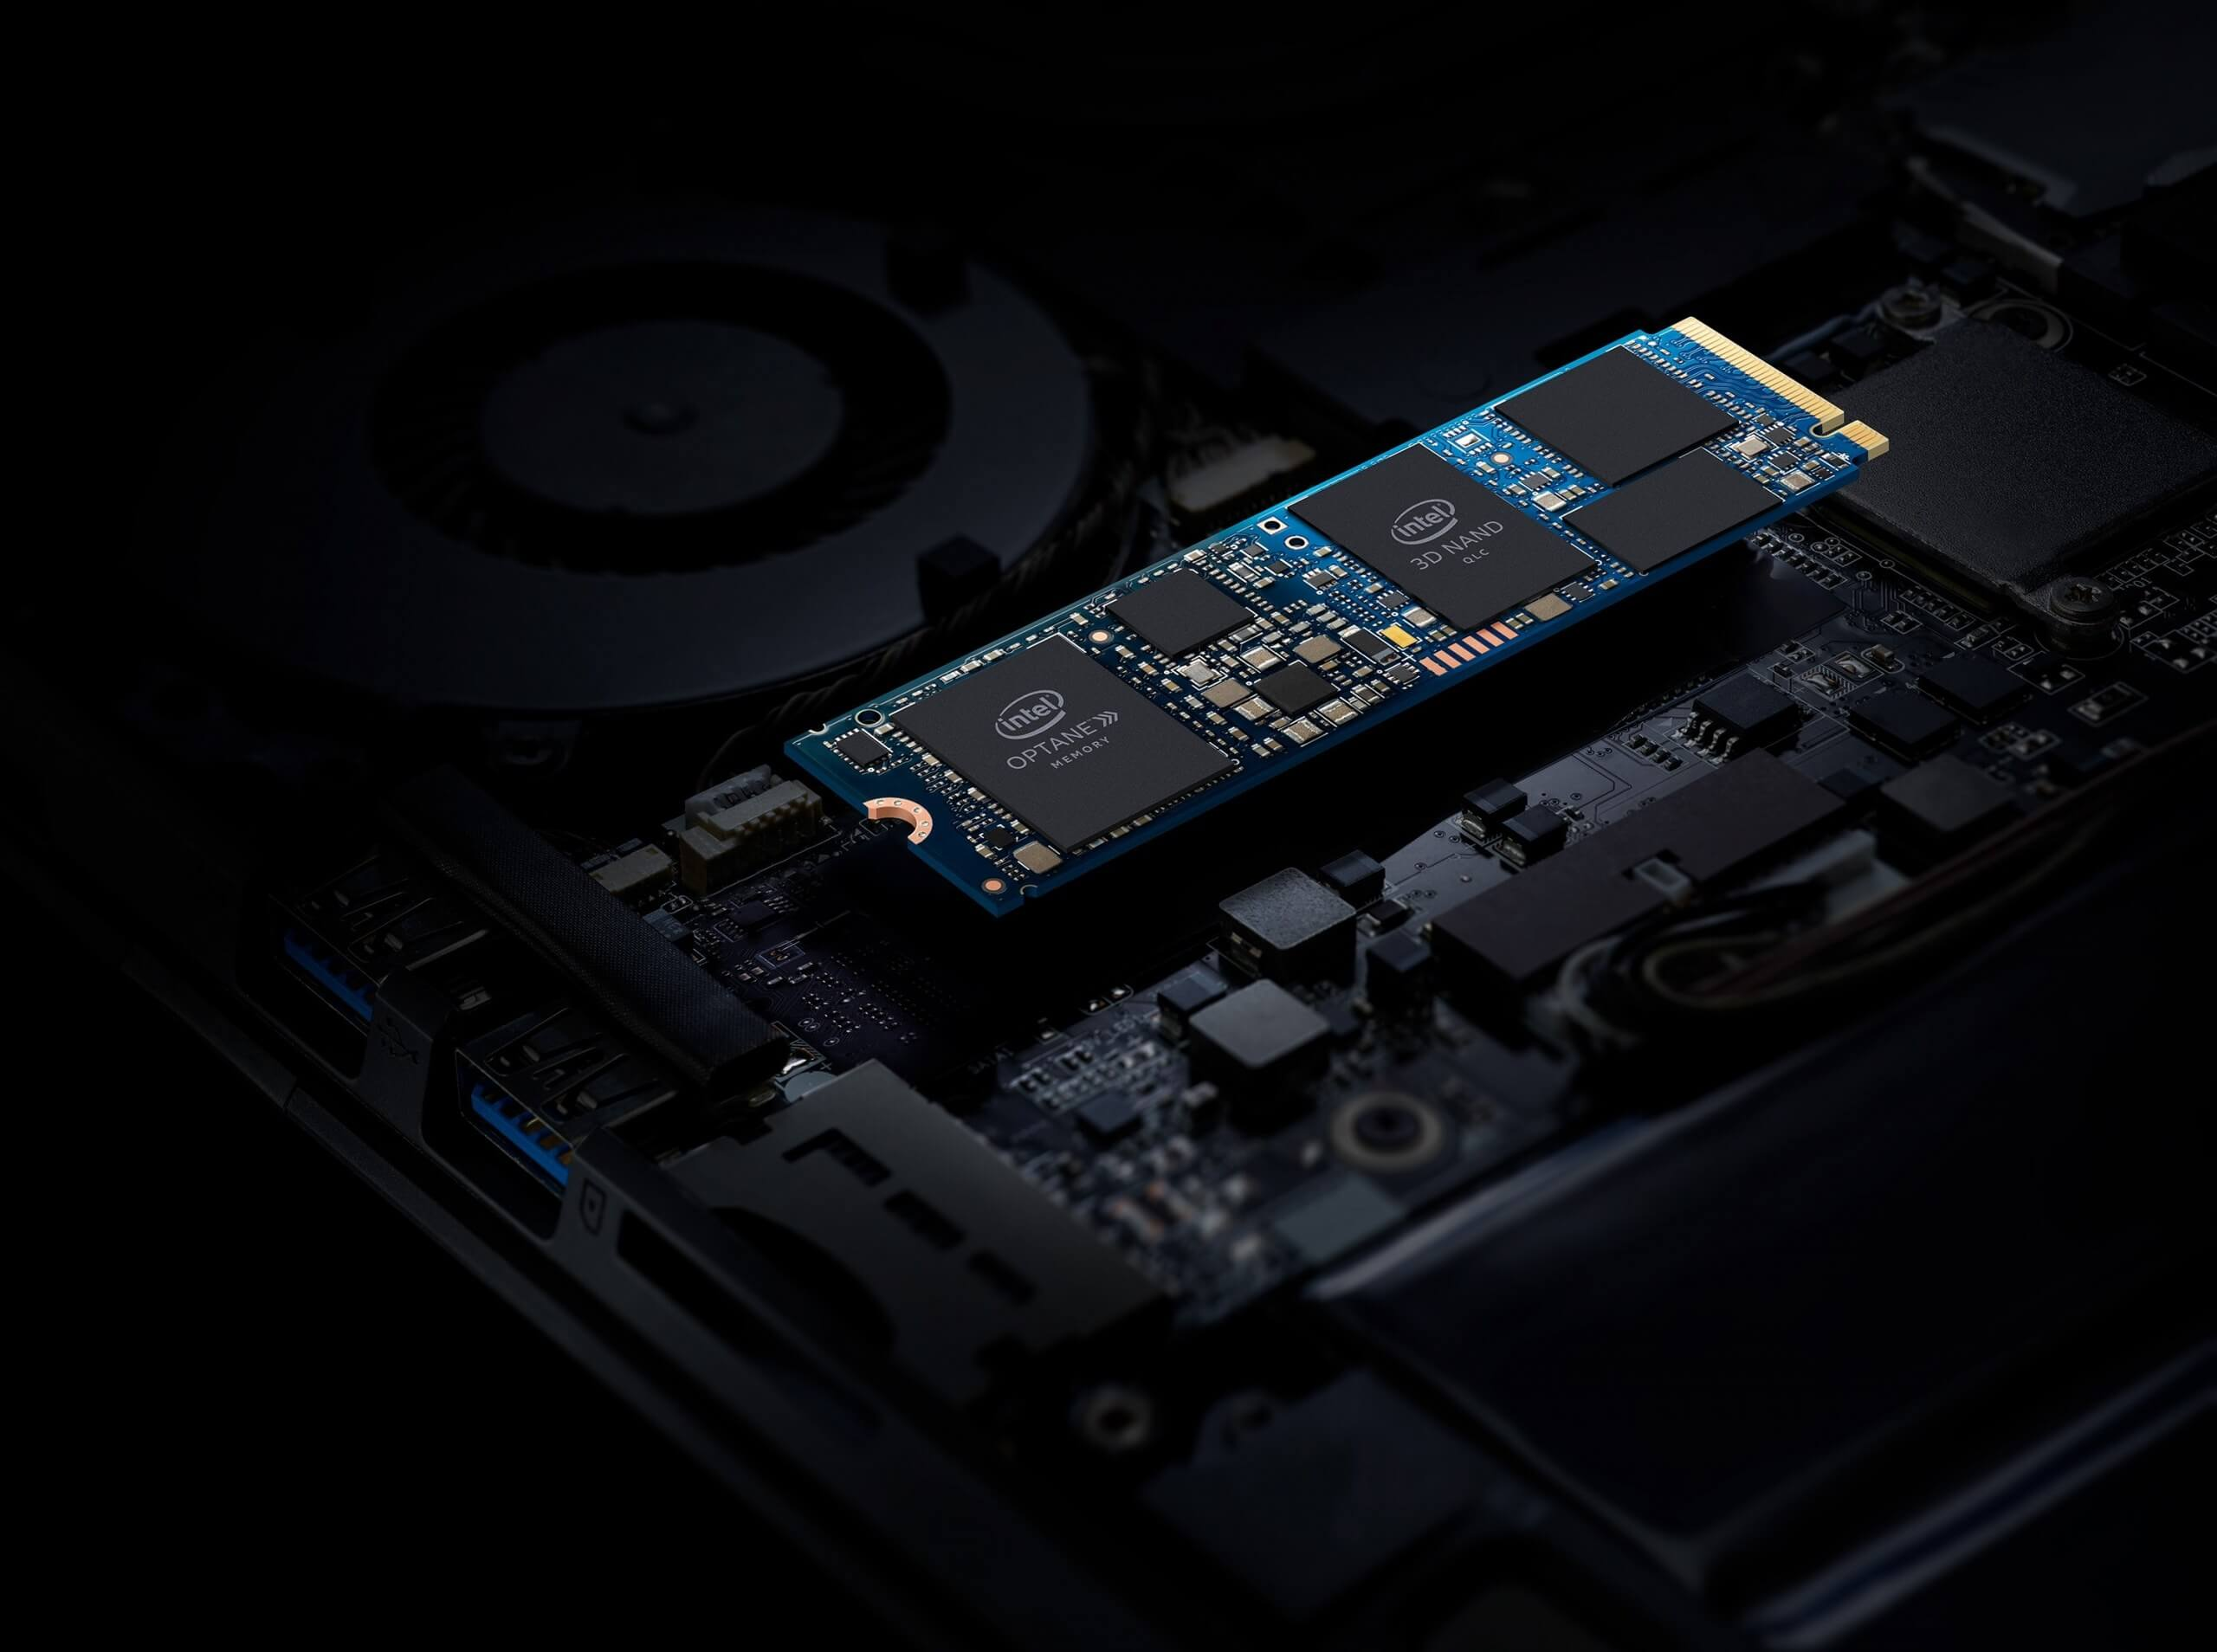 Intel shares specs for its ultra-fast Optane Memory H10 SSD - TechSpot